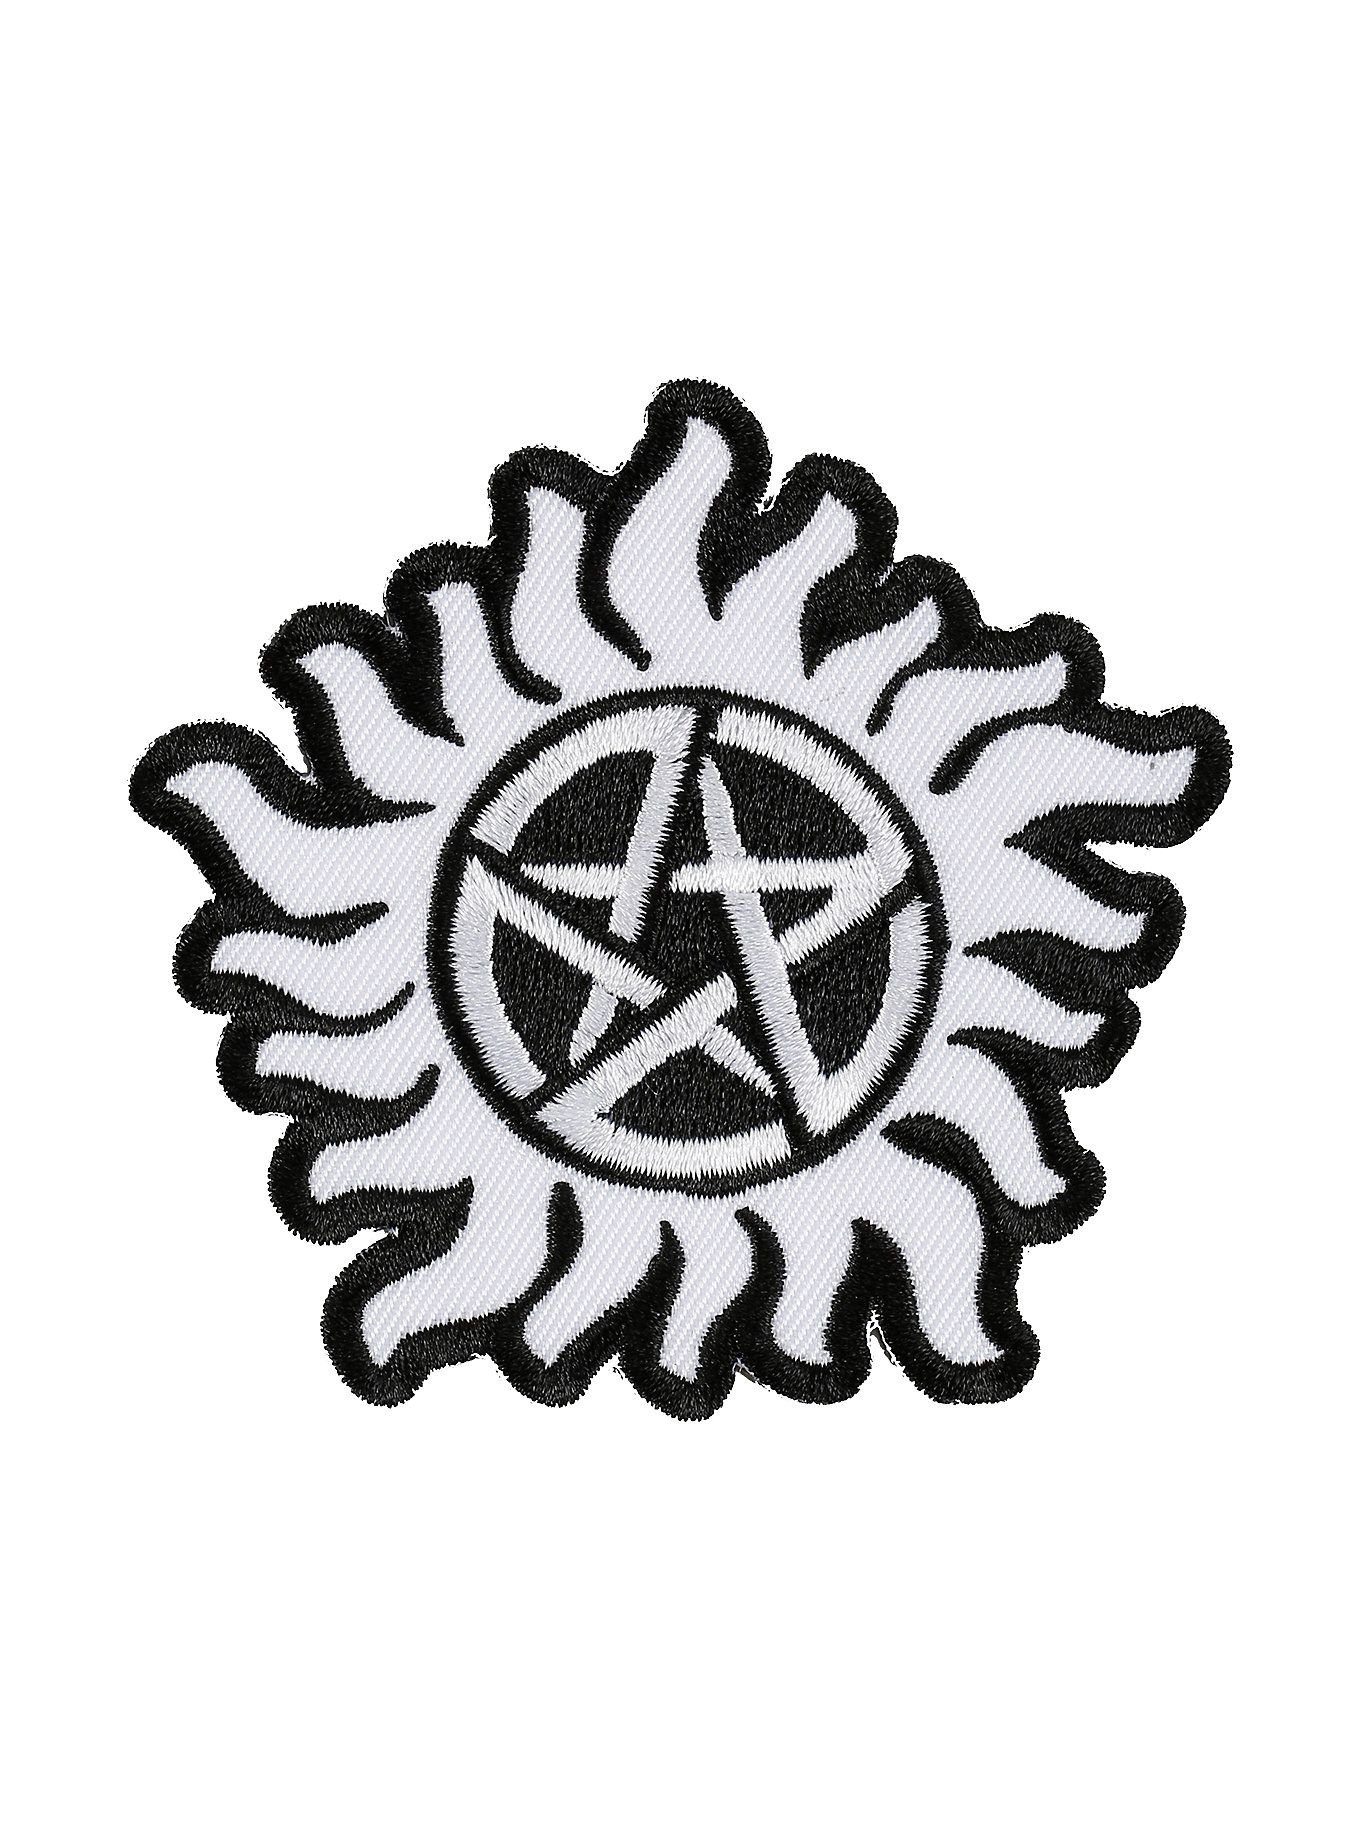 Supernatural Anti Possession Symbol Iron On Patch Patches